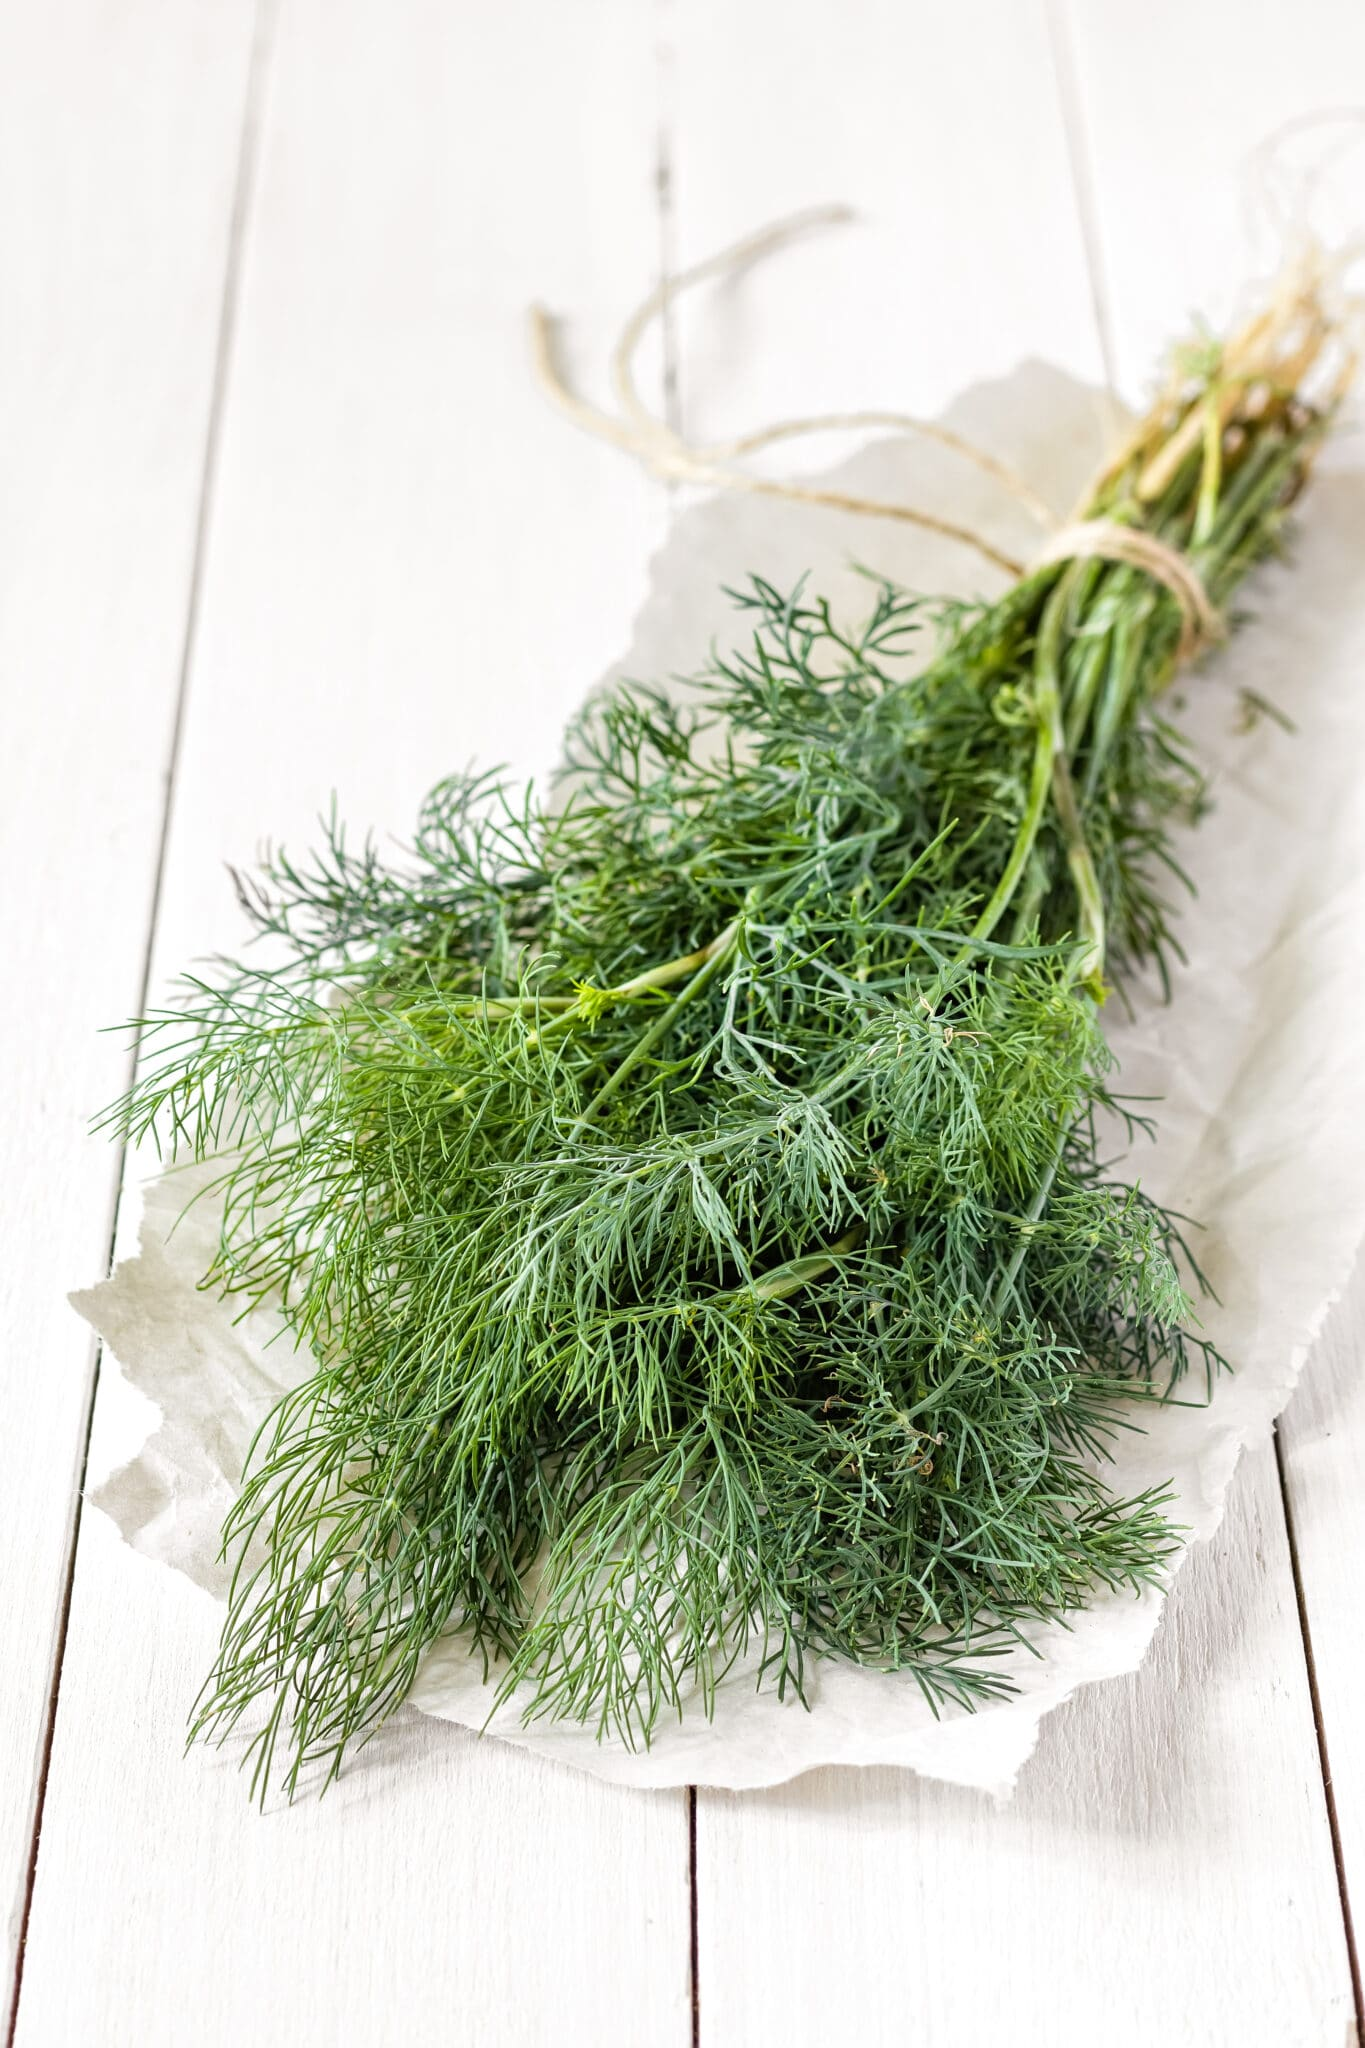 Freshly picked dill from a summer garden.